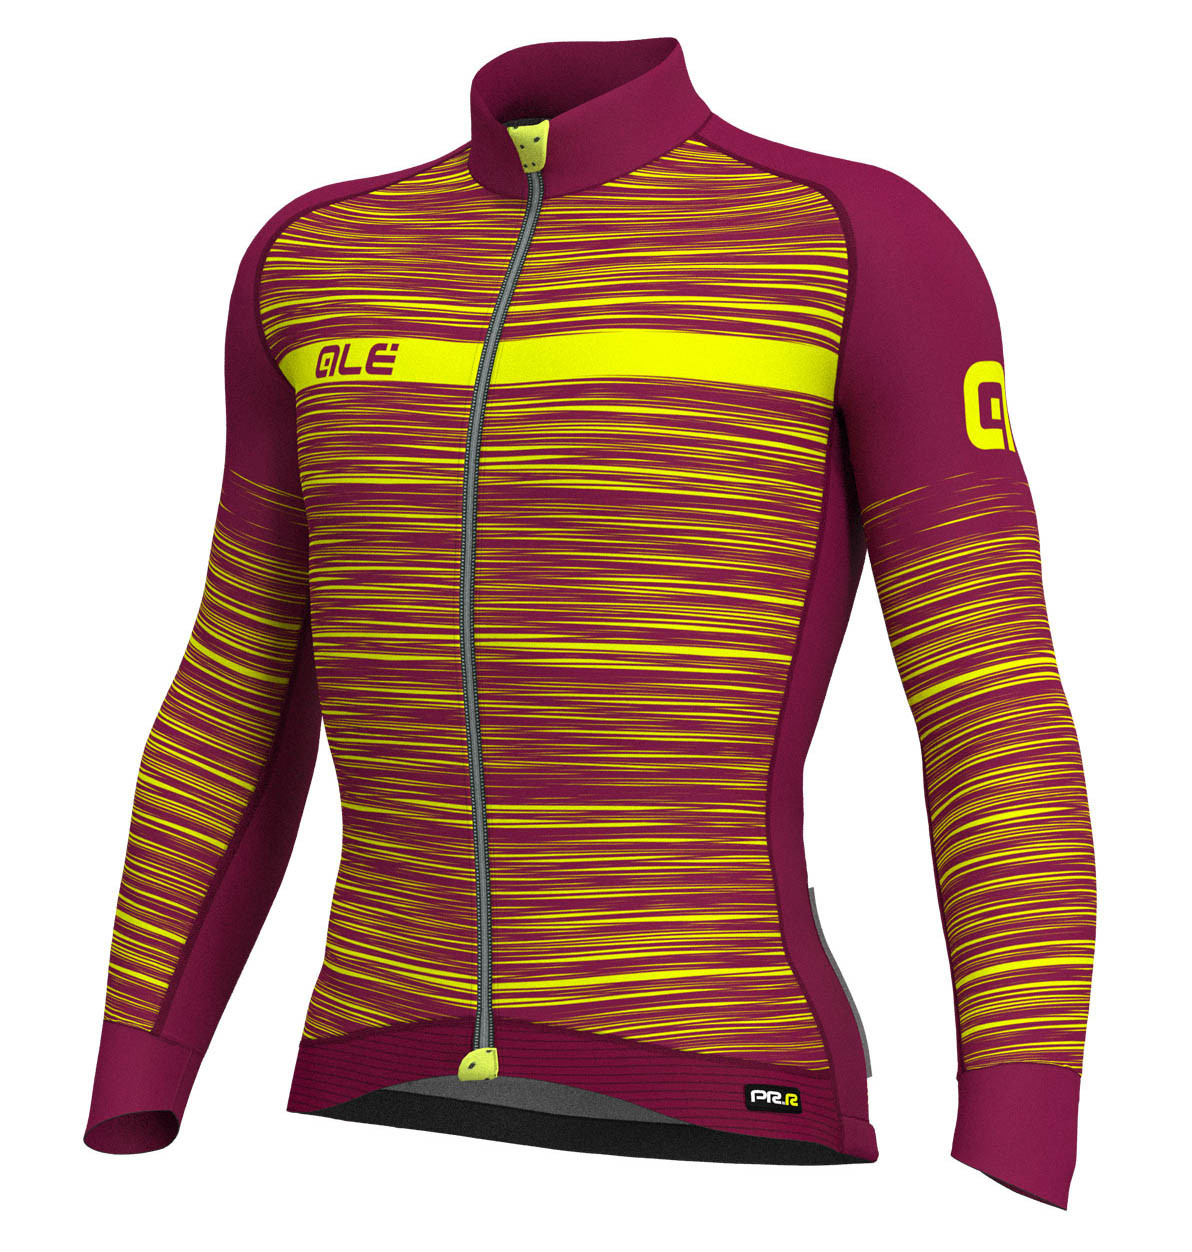 ALE' The End PRR Purple Yellow Long Sleeve Jersey